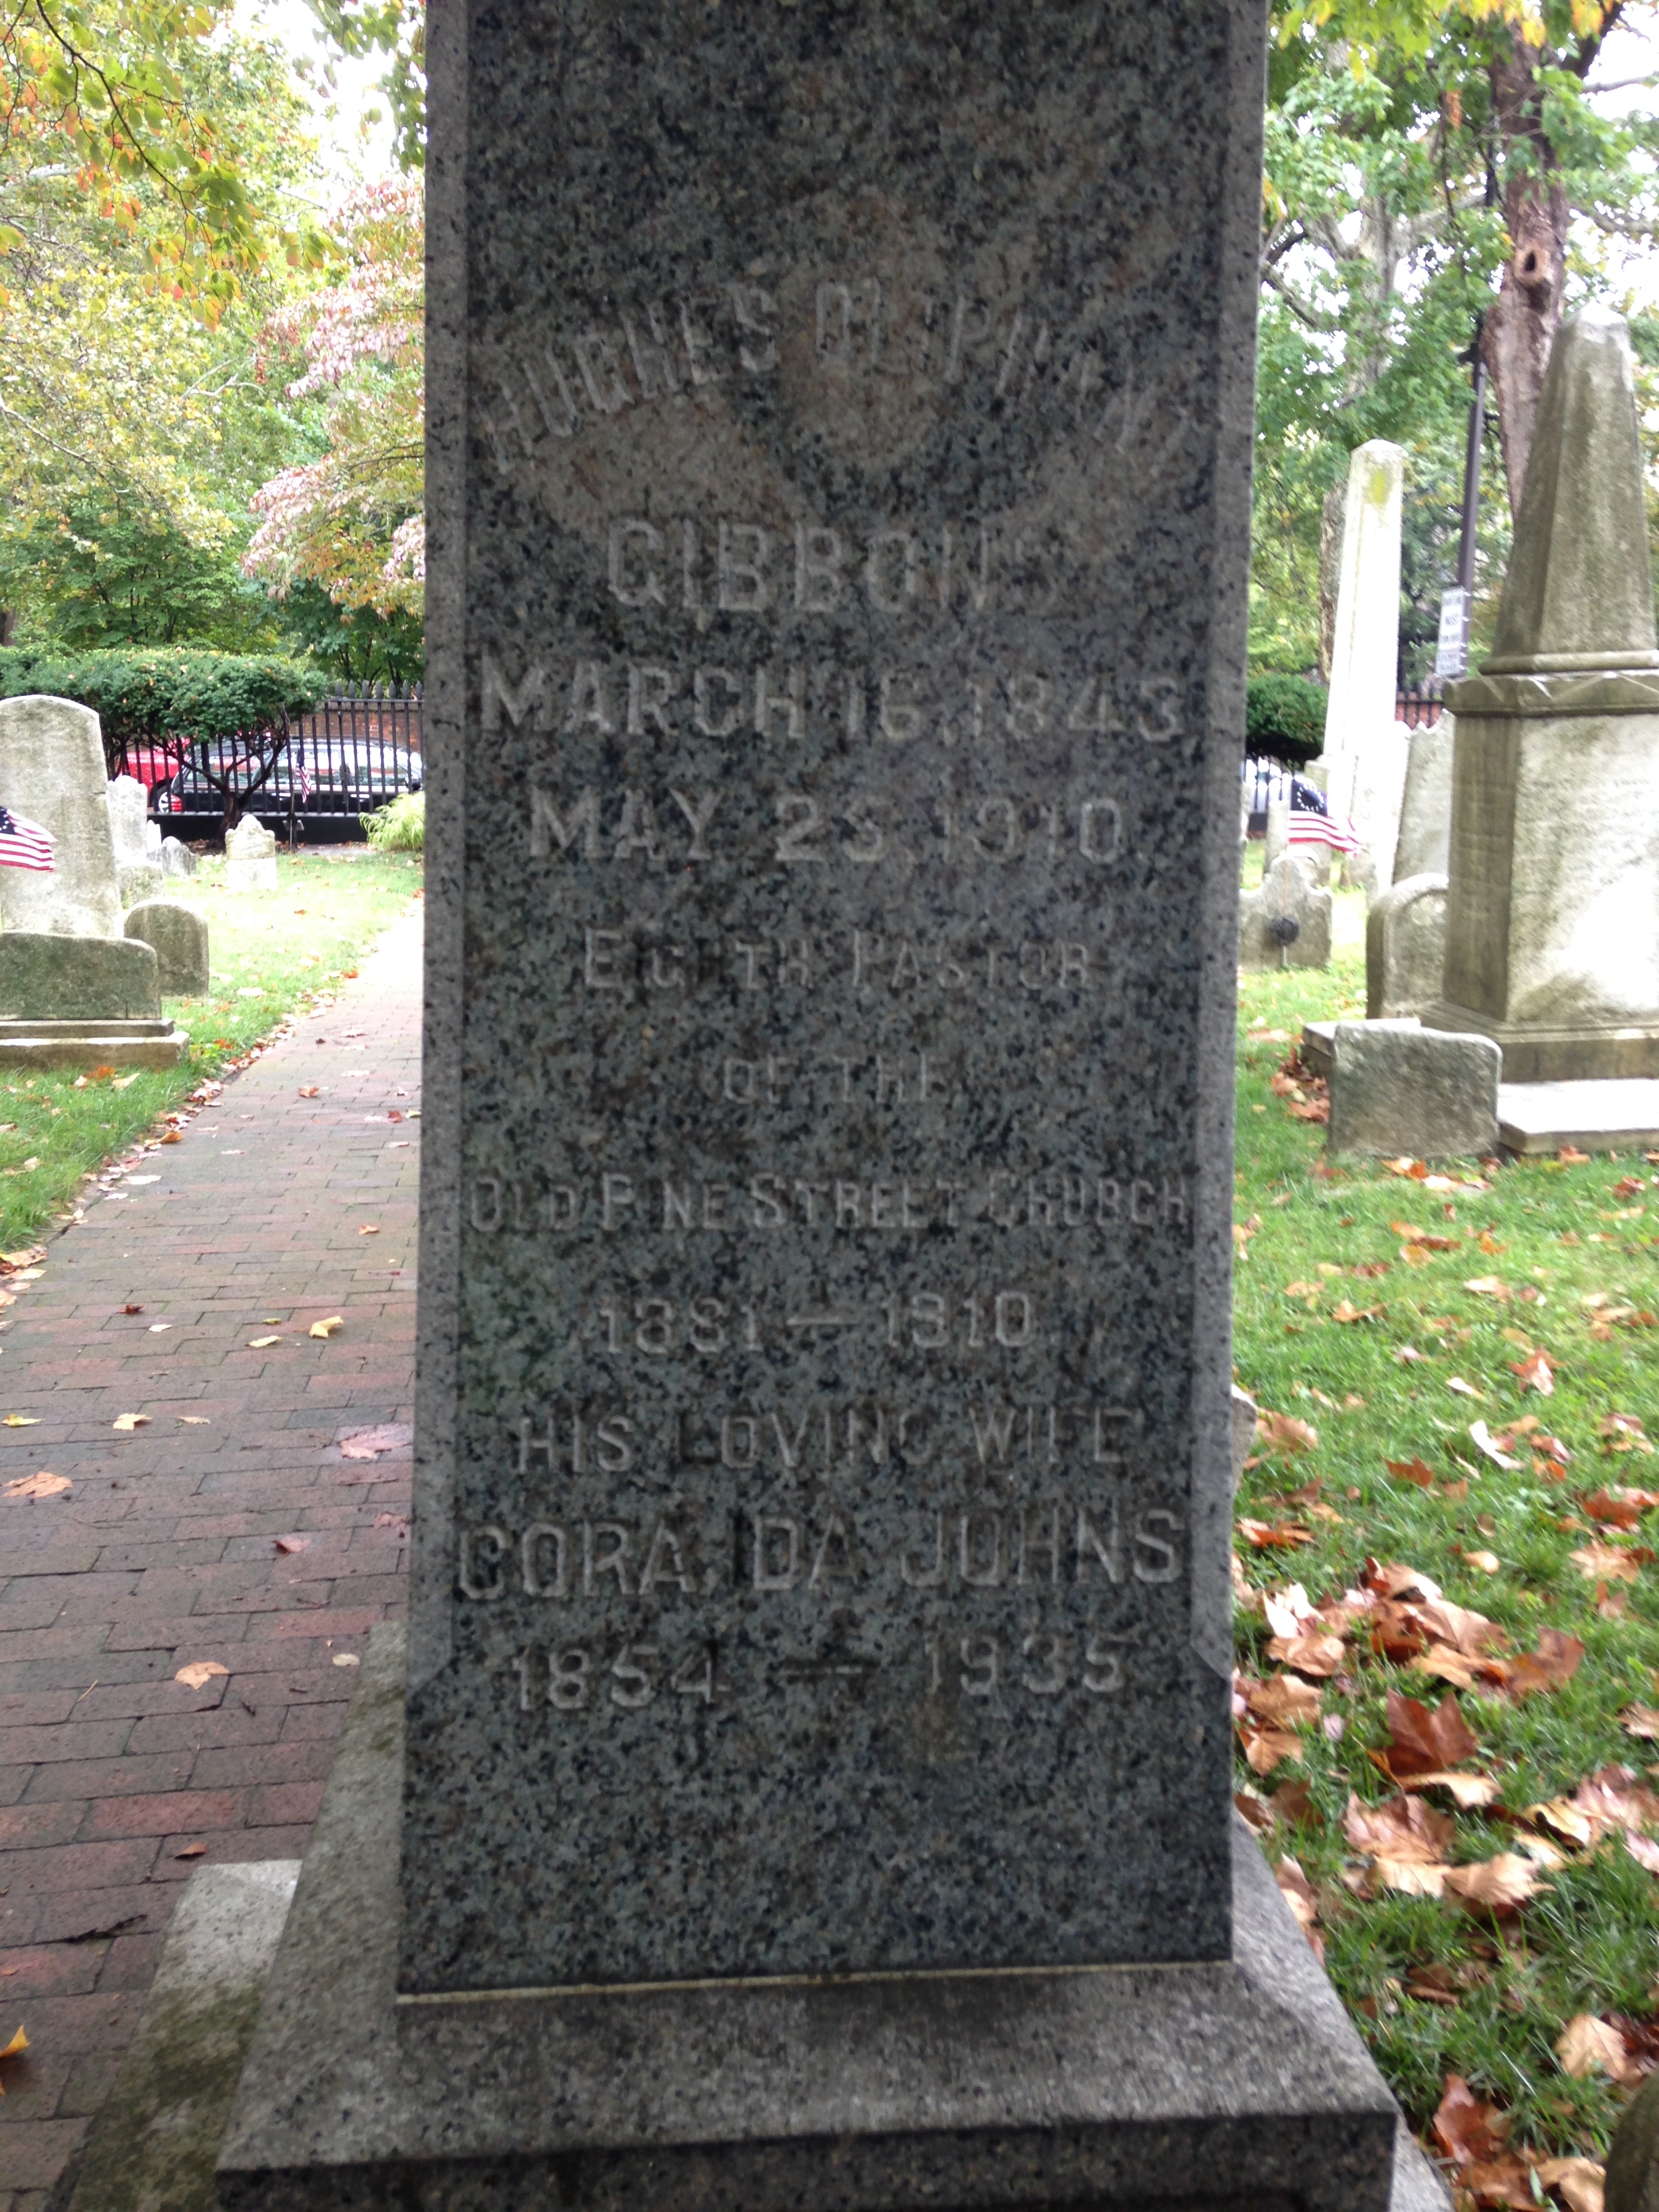 Hughes Oliphant Gibbons is buried at Old Pine Street Presbyterian Church Cemetery, Philadelphia, Pennsylvania.